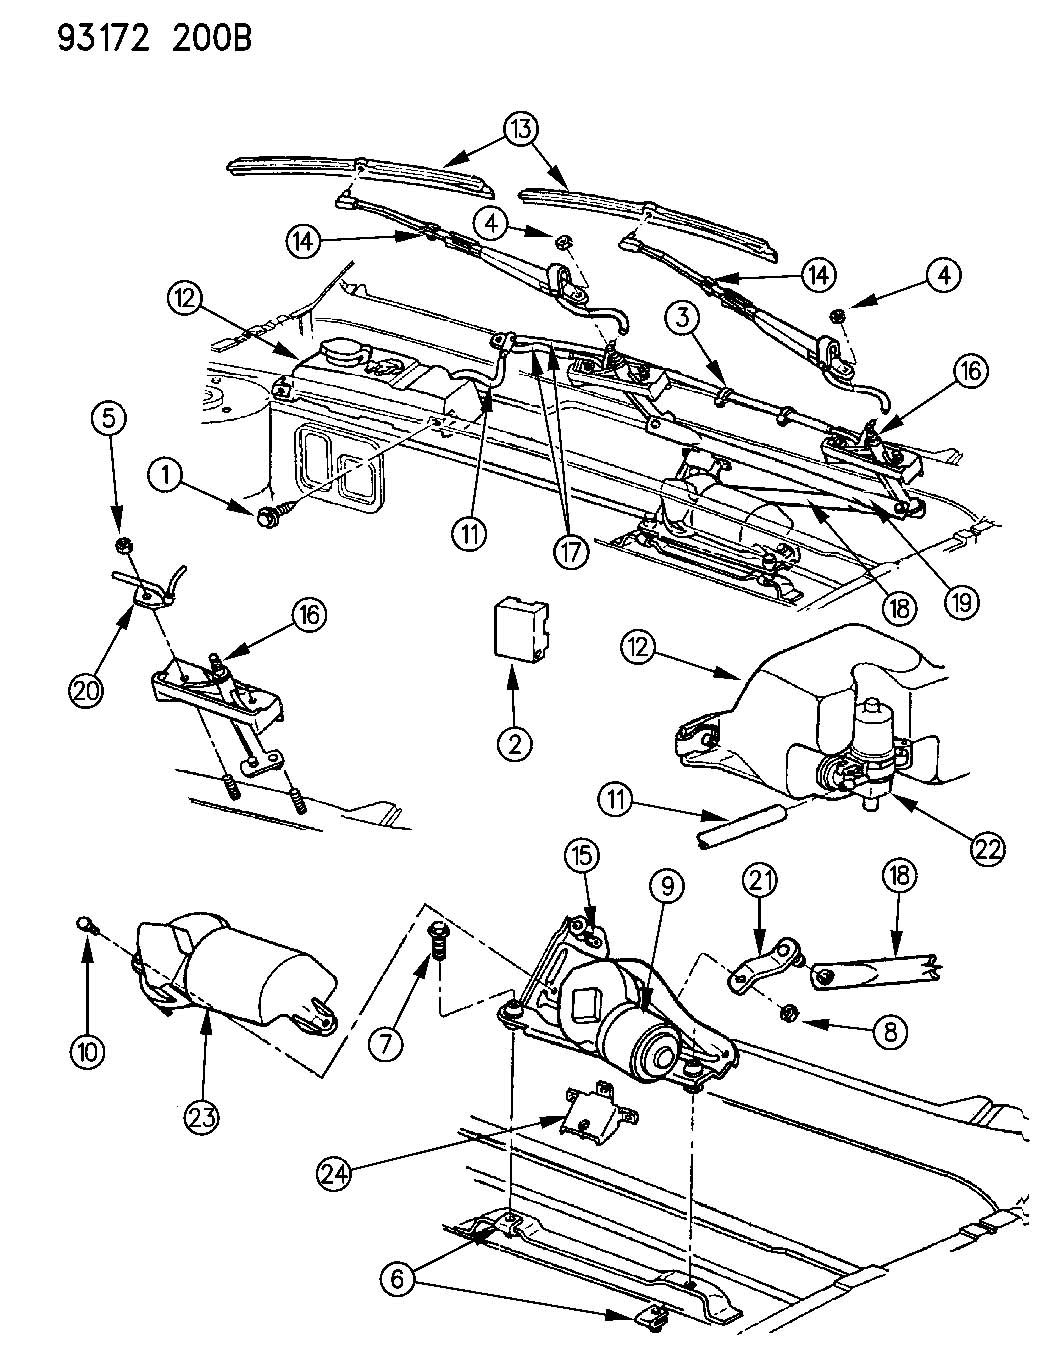 2008 Dodge Nitro Windshield Washer Parts Diagram. Dodge